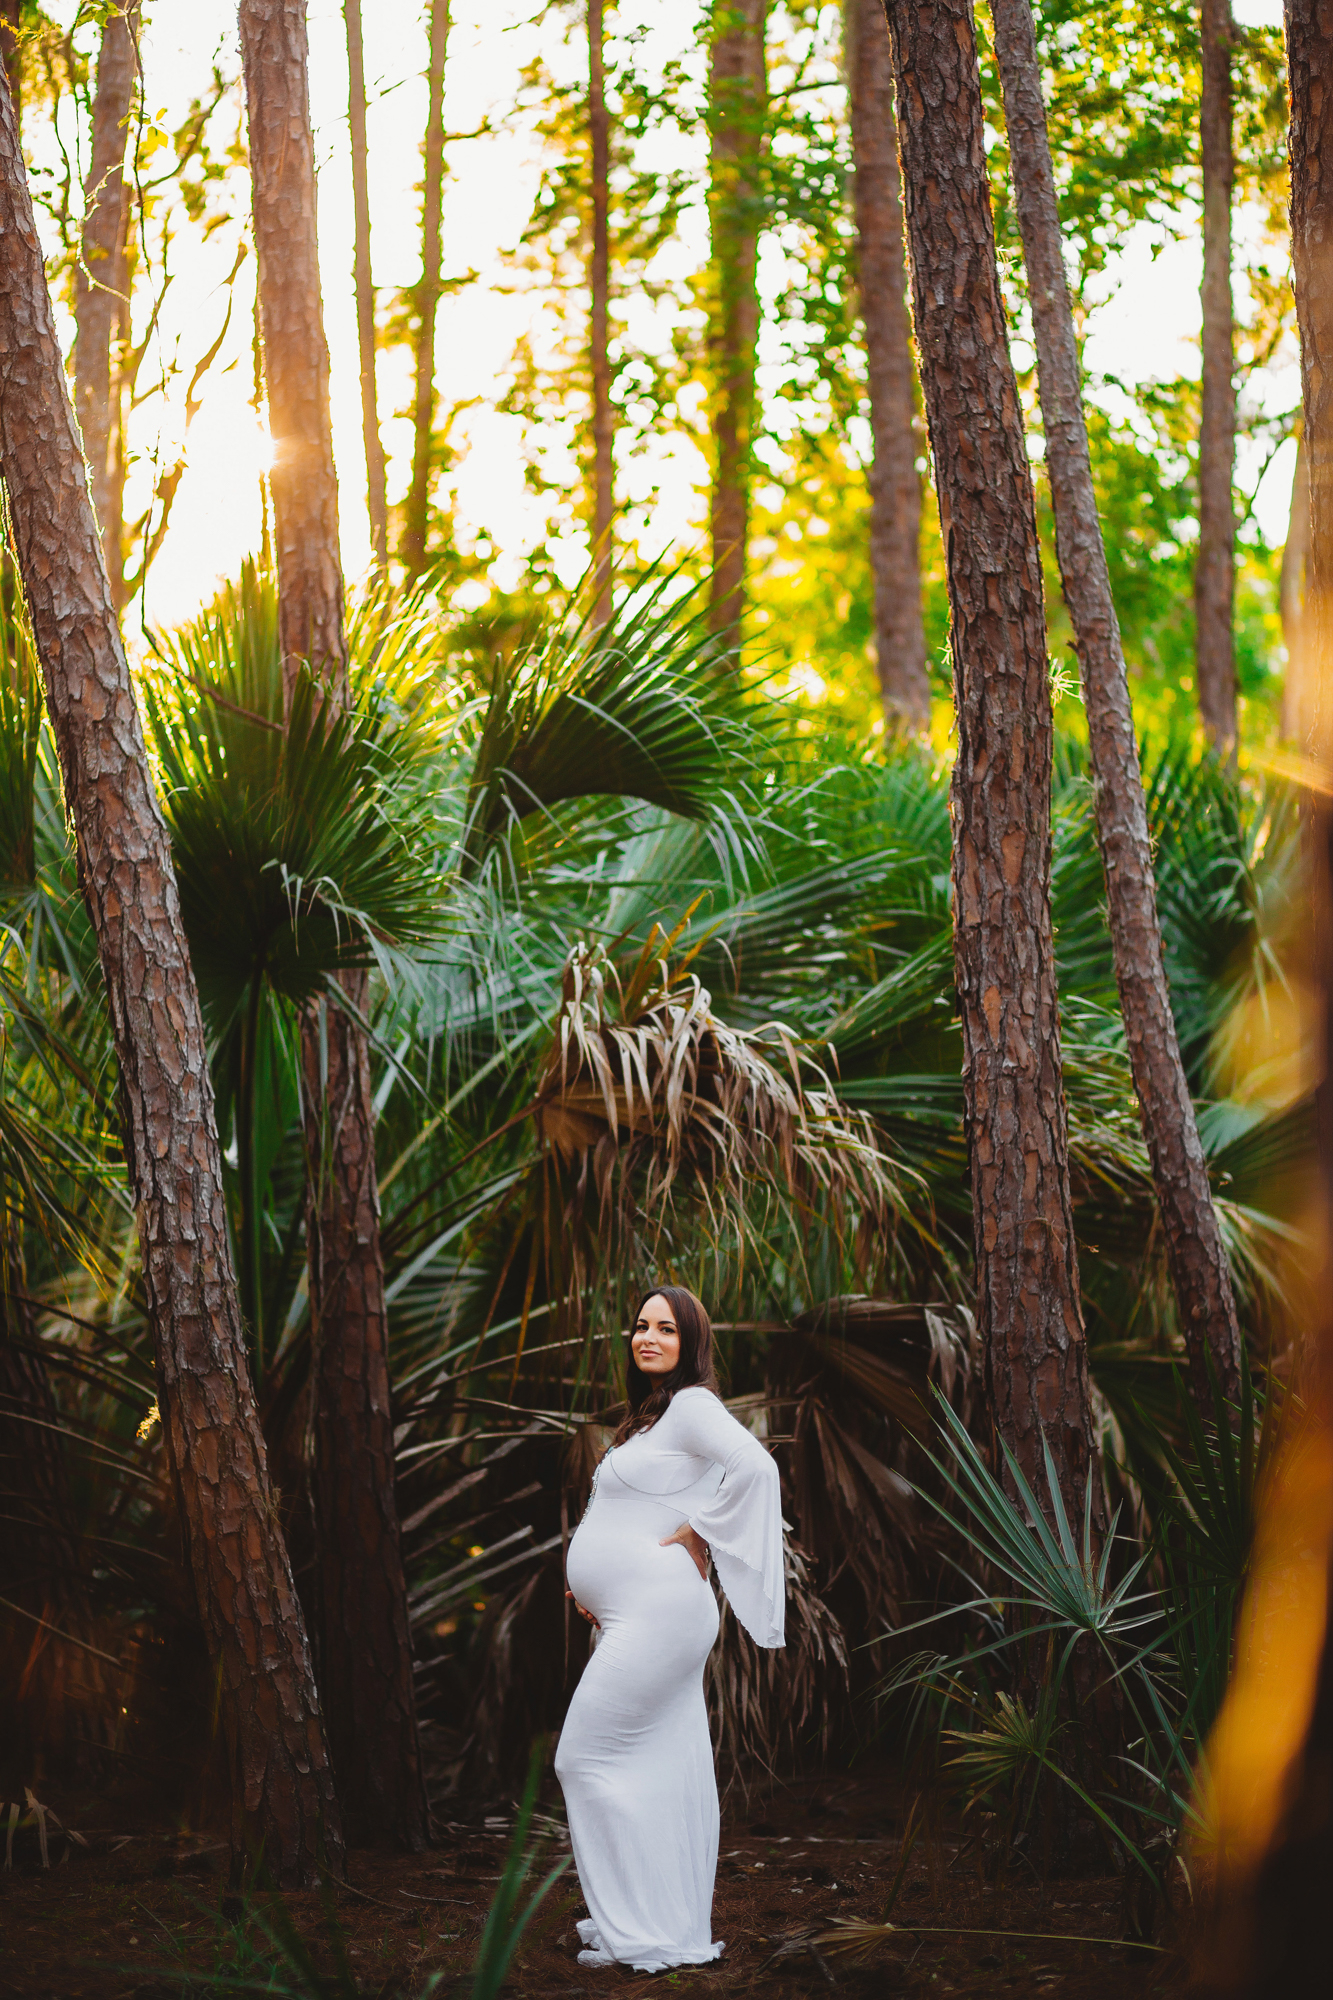 lifestyle maternity pictures, pregnancy photographer tampa